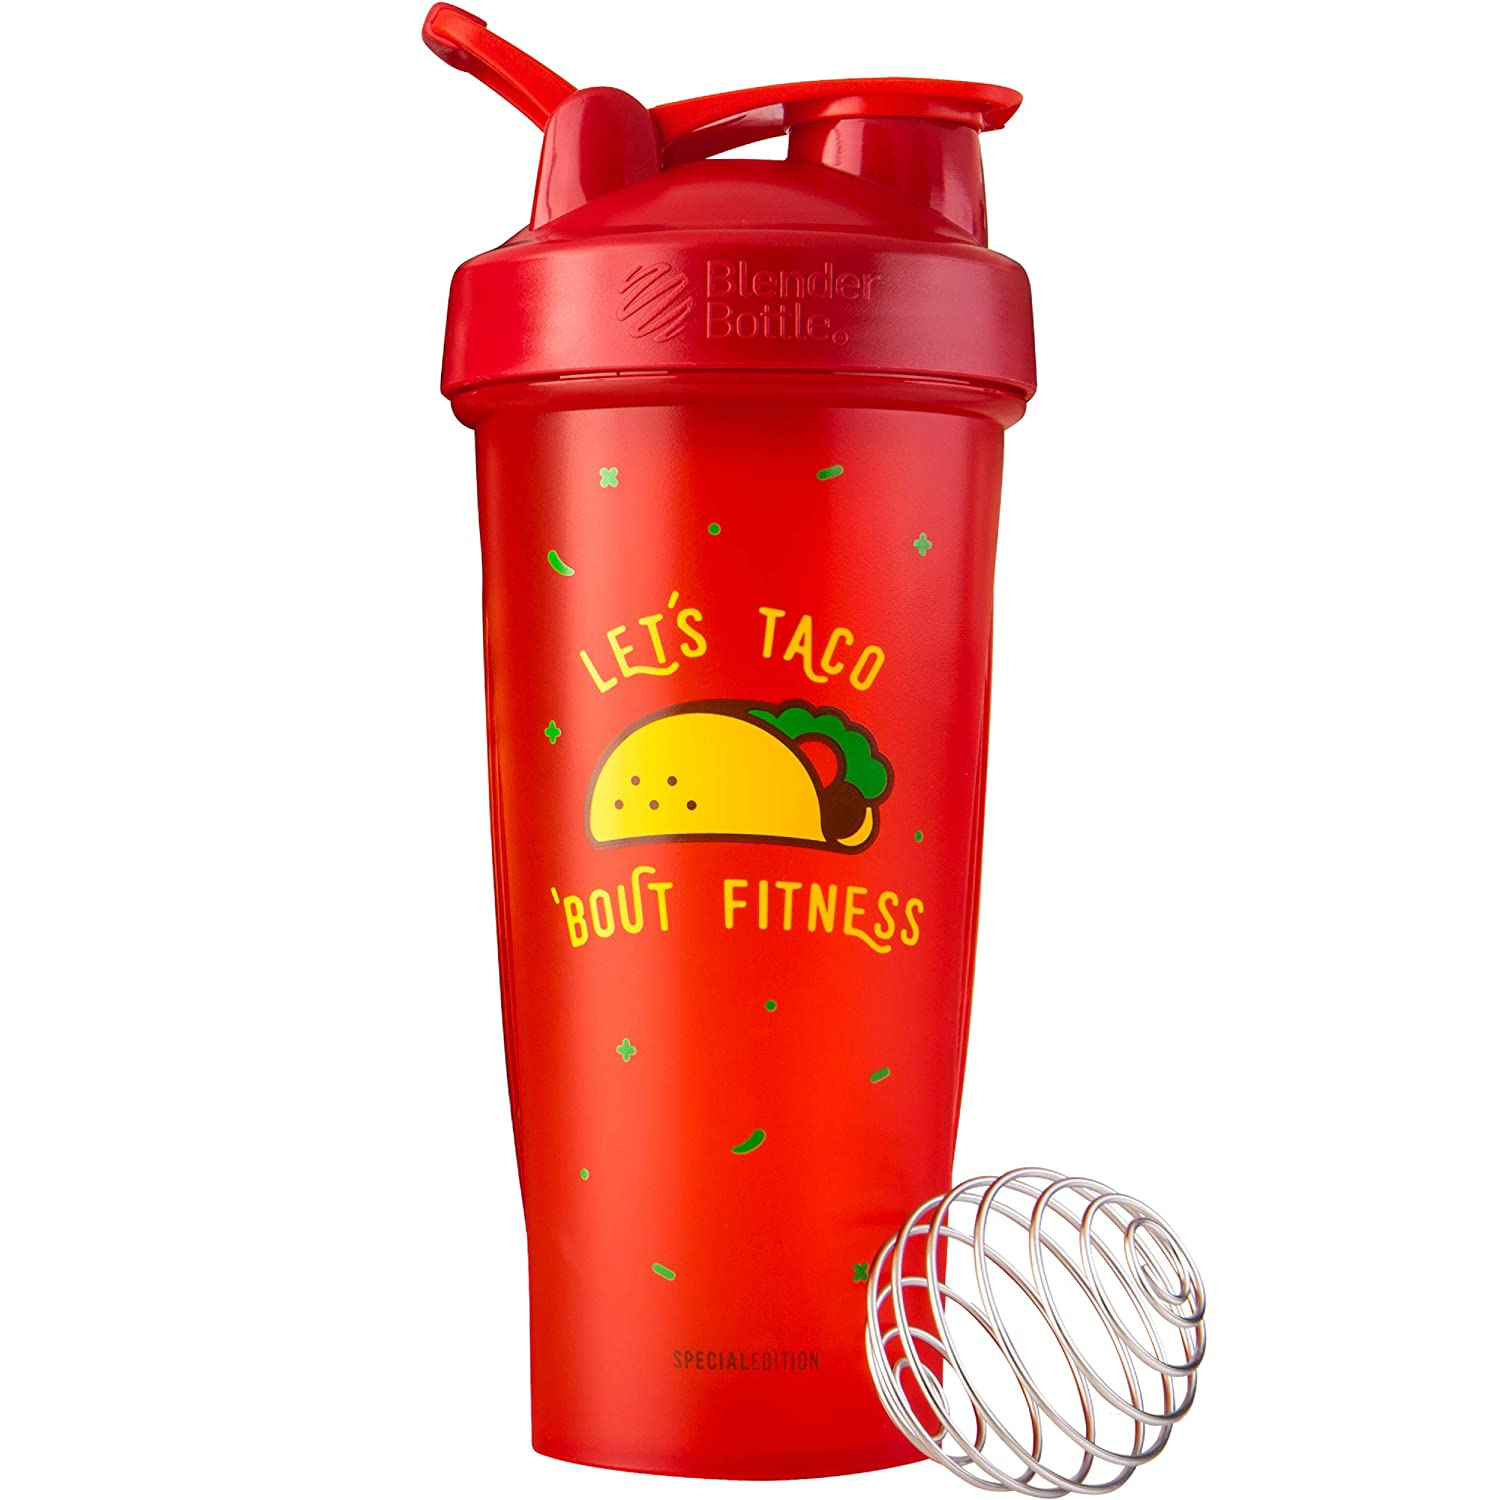 BlenderBottle Just for Fun Classic 28-Ounce Shaker Bottle  Lets Taco Bout Fitness